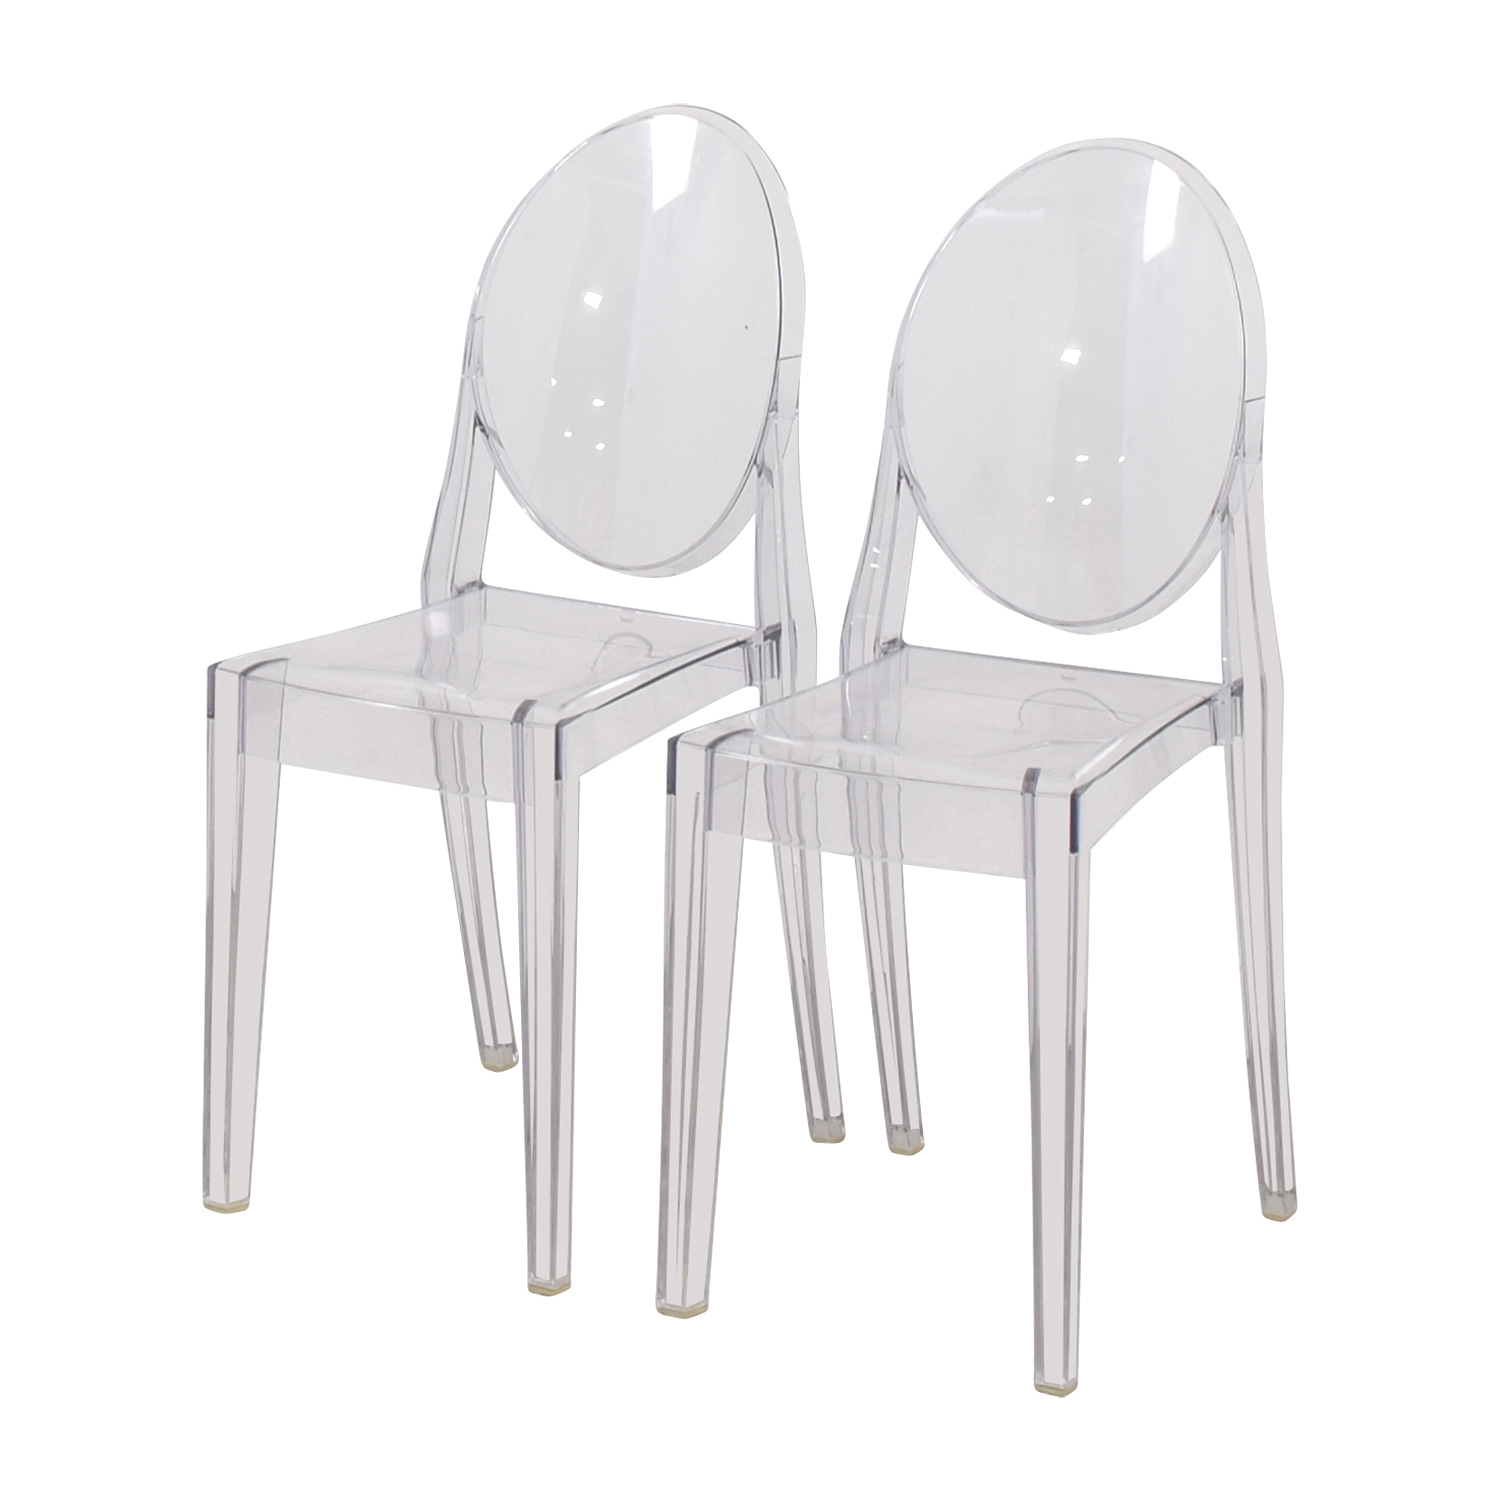 ghost chairs for sale hickory chair sofa fabrics 75 off kartell starck victoria